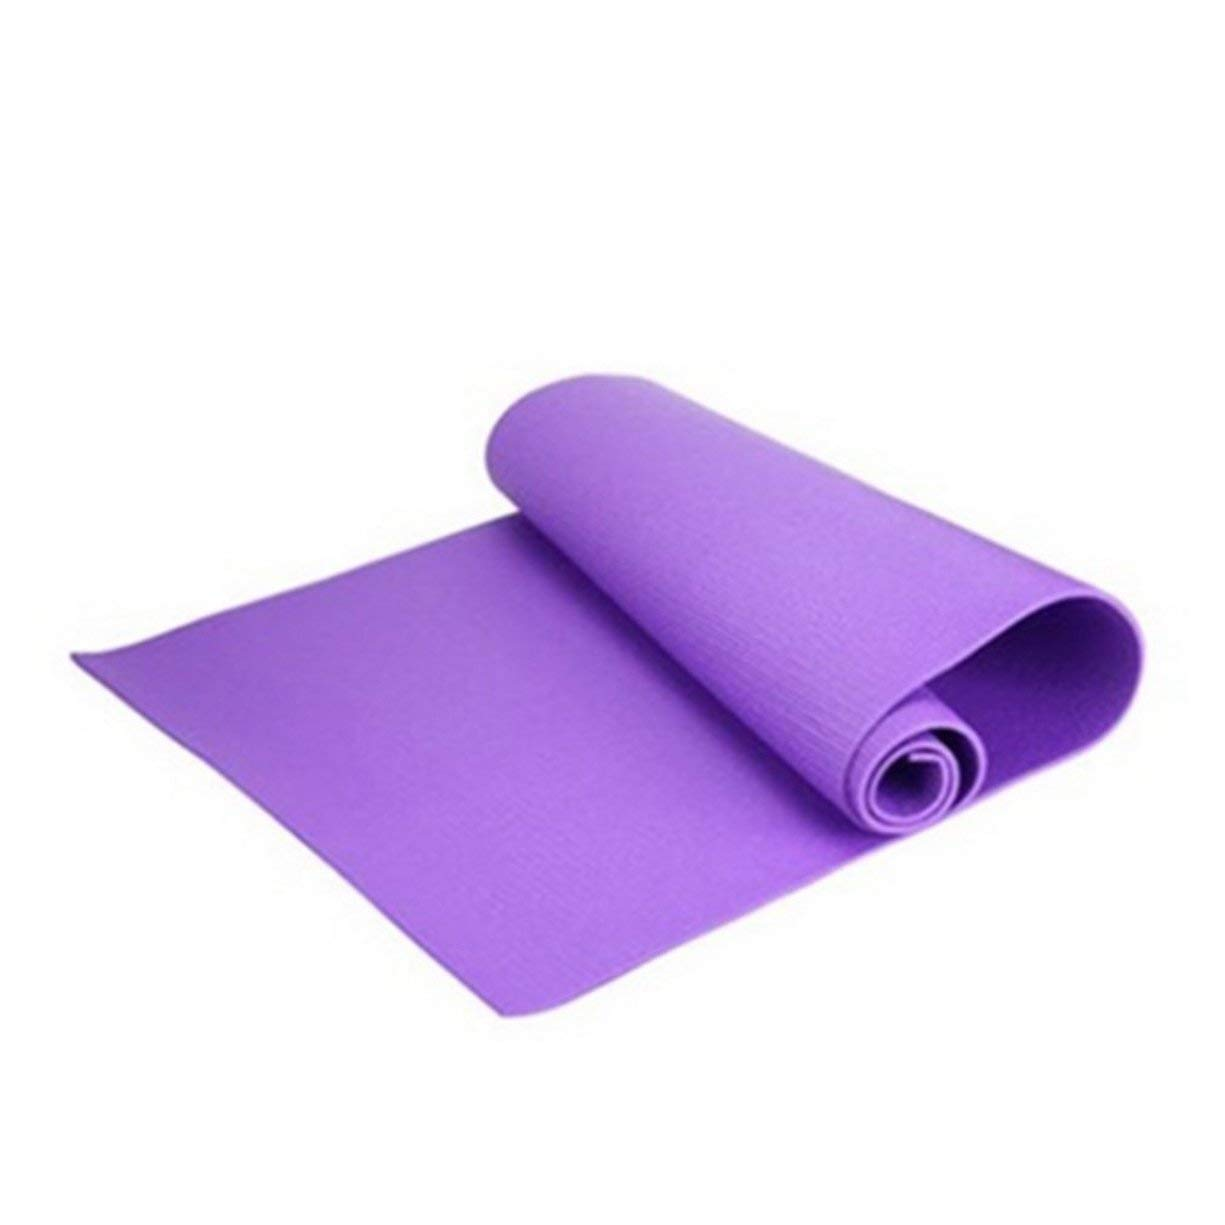 Detectoy 6mm Universal Thick Non-Slip Yoga Mat Exercise Pad Fitness Lose Weight 180cmX60cmX0.6cm Non-Skid Floor Play Mat